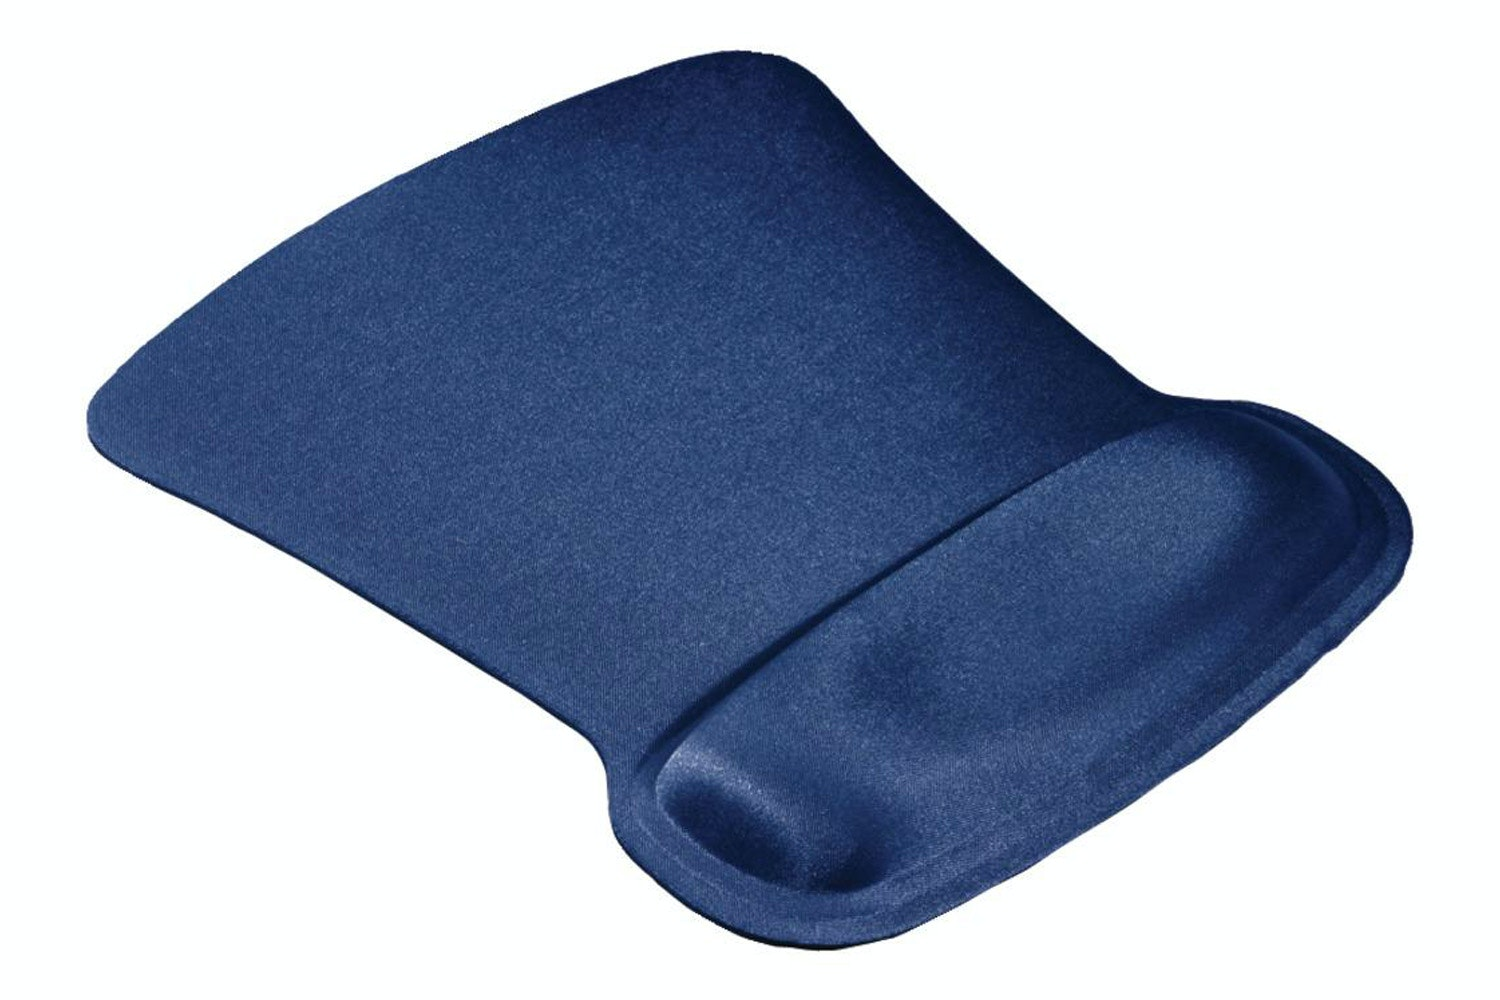 Allsop 30193 Gel Mouse Pad With Wrist Rest | Blue